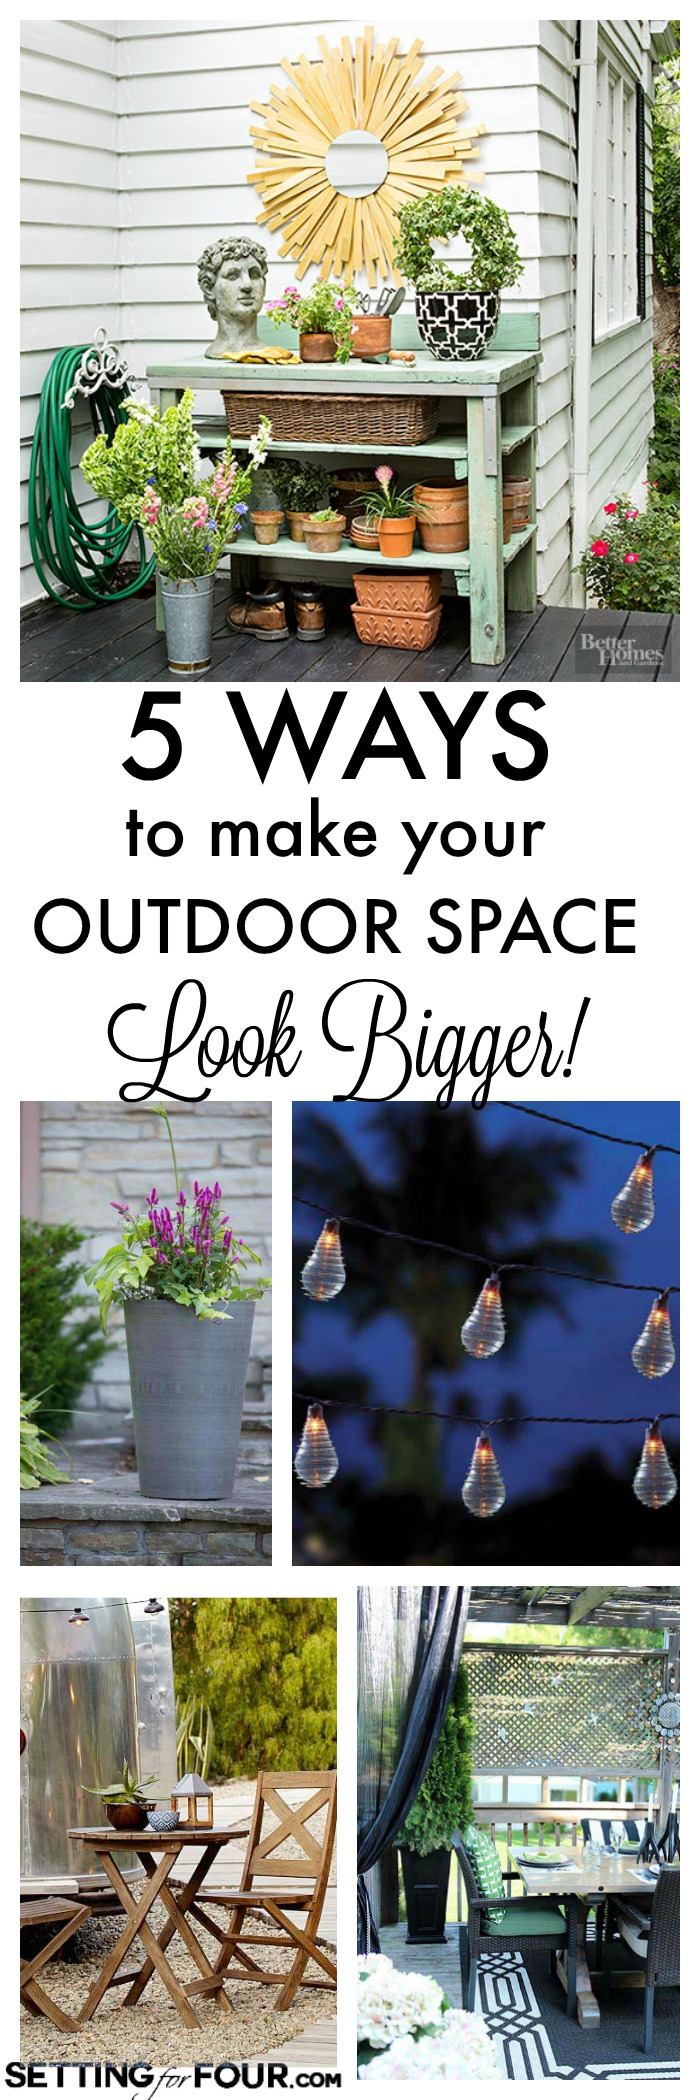 How to fake more space on your outdoor patio or deck! See these 5 instant ways to make your outdoor space look deceptively large at www.settingforfour.com